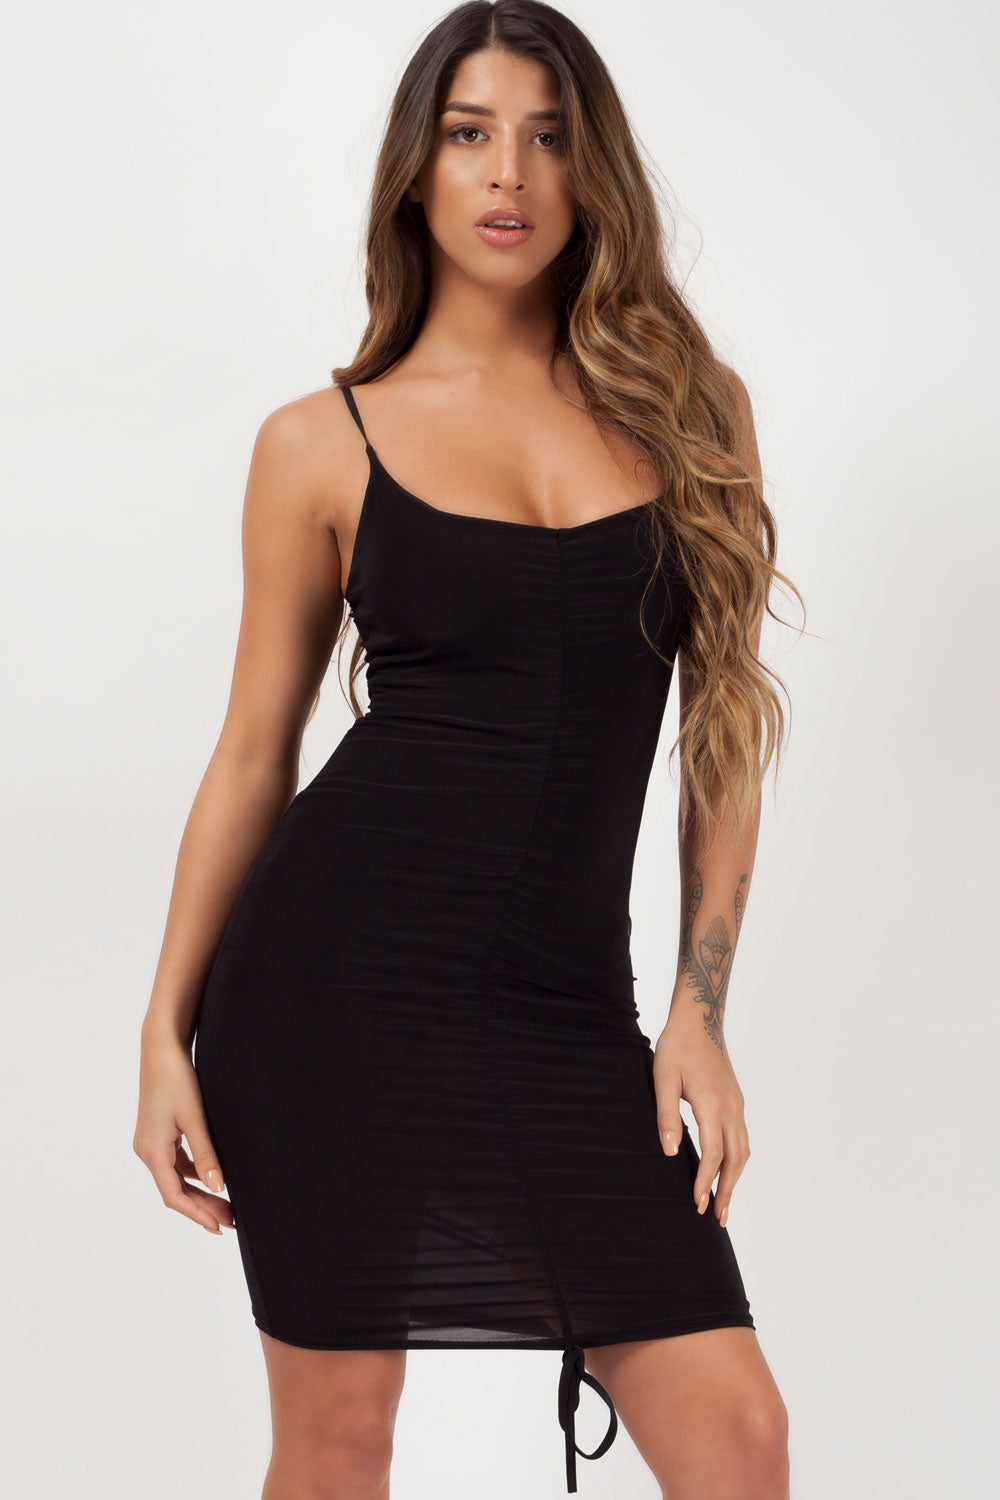 black ruched front bodycon dress styledup fashion